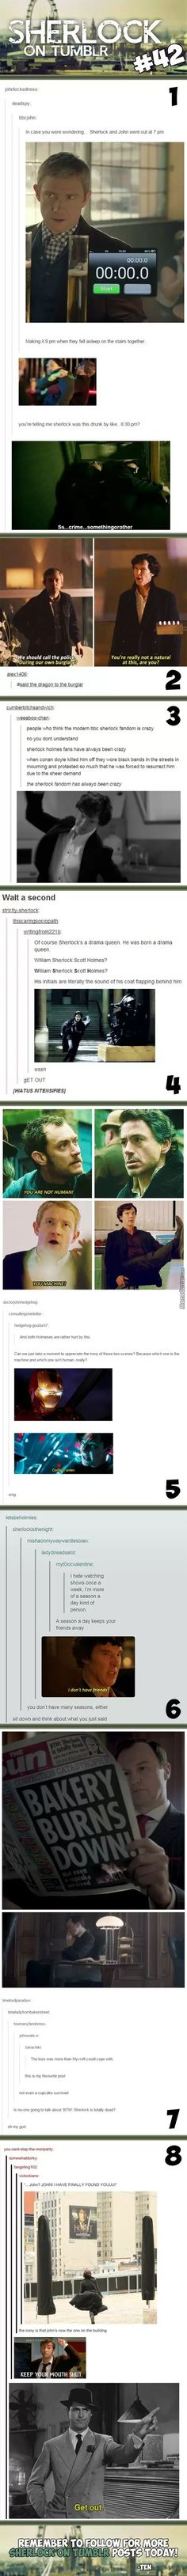 Sherlock On Tumblr #42